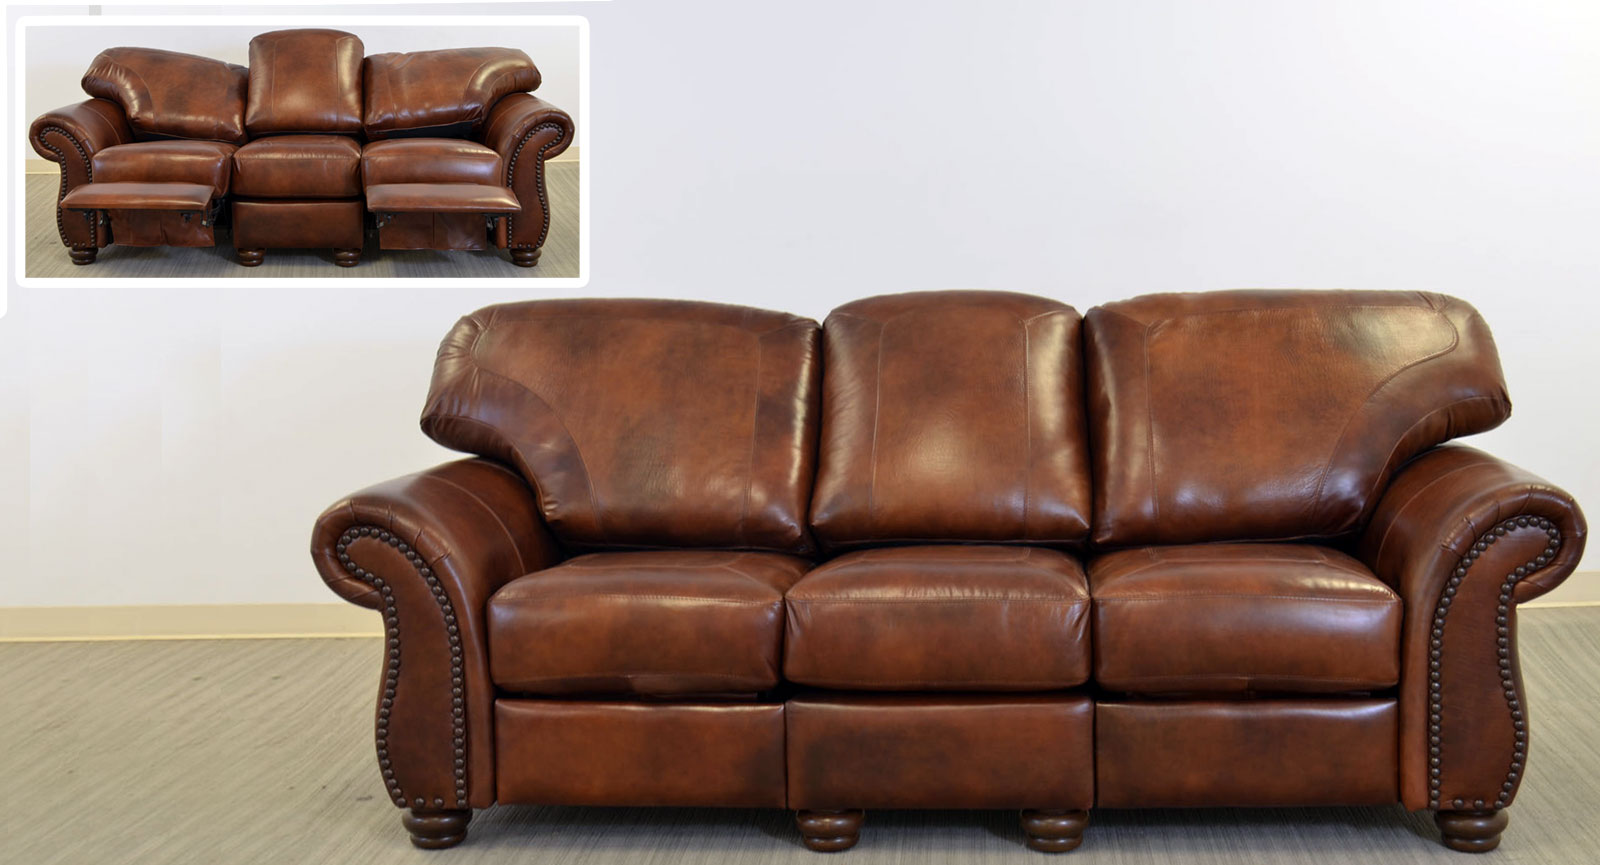 SofaTwo Incliners